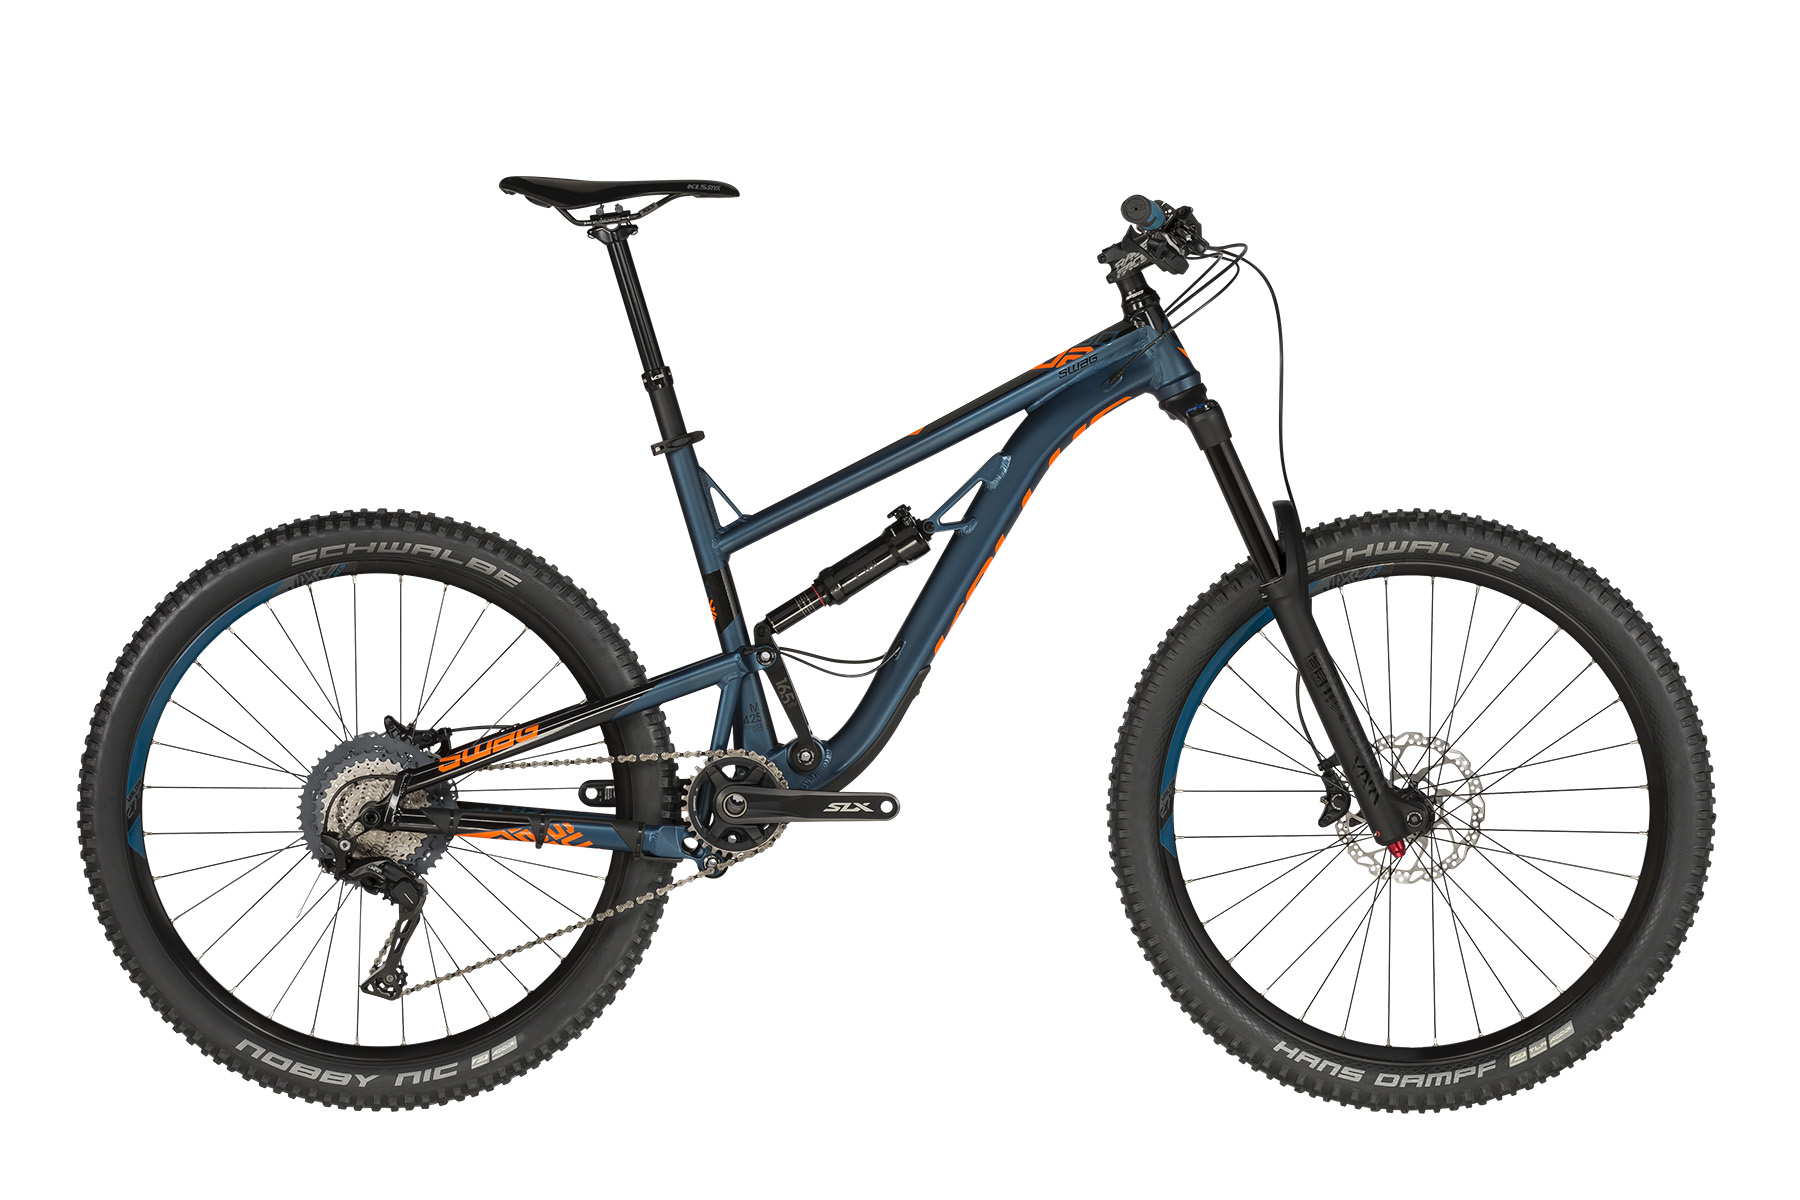 <strong>Bicicleta full suspension </strong>cu telescop fata ROCK SHOX Yari RC si telescop spate ROCK SHOX Deluxe RT.</p><p><strong>Bicicleta enduro cu echipare Shimano</strong> 11 viteze, schimbator de spate Deore XT.</p><p><strong>frame</strong> KELLYS Enduro 27.5 / Think Link suspension system, 165mm rear travel, tapered HT, internal routing, 12x148mm Boost thru axle<br /><strong>frame size</strong> S / M / L<br /><strong>fork</strong> ROCK SHOX Yari RC (27.5) Boost, 170mm, DebonAir / Motion Control RC / Maxle Stealth 15mm thru axle<br /><strong>rear shock</strong> ROCK SHOX Deluxe RT, DebonAir / Rapid Recovery / Open-Pedal (230x65mm)<br /><strong>head parts</strong> FSA 1.5 integrated<br /><strong>b.b.parts</strong> SHIMANO PressFit SM-BB71-41A<br /><strong>crankset</strong> SHIMANO SLX M7000-11-B1 Hollowtech II (30) - length 175mm<br /><strong>shifters</strong> SHIMANO SLX SL-M7000 I-spec II Rapidfire Plus<br /><strong>r/derailleur</strong> SHIMANO Deore XT M8000 (direct mount)<br /><strong>speed</strong> 11<br /><strong>cassette sprocket</strong> SHIMANO CS-M7000-11 (11-46)<br /><strong>chain</strong> KMC X11 (110 links)<br /><strong>brakes</strong> SHIMANO SLX M7000 Hydraulic Disc<br /><strong>brake rotors</strong> 180mm front / 180mm rear<br /><strong>brake levers</strong> SHIMANO SLX BL-M7000<br /><strong>hubs</strong> SHIMANO MT400-B Disc Center Lock (15x110mm / 12x148mm / 32 holes)<br /><strong>thru axle</strong> ROCK SHOX Maxle Stealth 15x110mm front / Mr.Control 12x148mm rear<br /><strong>rims</strong> KLS Valor 2 Disc 584x27 (32 holes)<br /><strong>spokes</strong> stainless steel black<br /><strong>tires</strong> SCHWALBE Hans Dampf Performance 60-584 (27.5x2.35) Tubeless Ready, ADDIX, folding front / SCHWALBE Nobby Nic Performance 60-584 (27.5x2.35) ADDIX, folding rear<br /><strong>stem</strong> RACE FACE Chester 35 - diam 28.6mm / bar bore 35mm / 0° / length 40mm (S), 60mm (M - L)<br /><strong>handlebar</strong> RACE FACE Chester 35 RiseBar - diam 35mm / rise 20mm / width 780mm<br /><strong>grips</strong> KLS Crypton<br /><strong>seat post</strong> KS - Remote Telescopic - diam 30.9mm / length 485mm, travel 150mm<br /><strong>saddle</strong> KLS Styx<br /><strong>pedals</strong> KLS Master